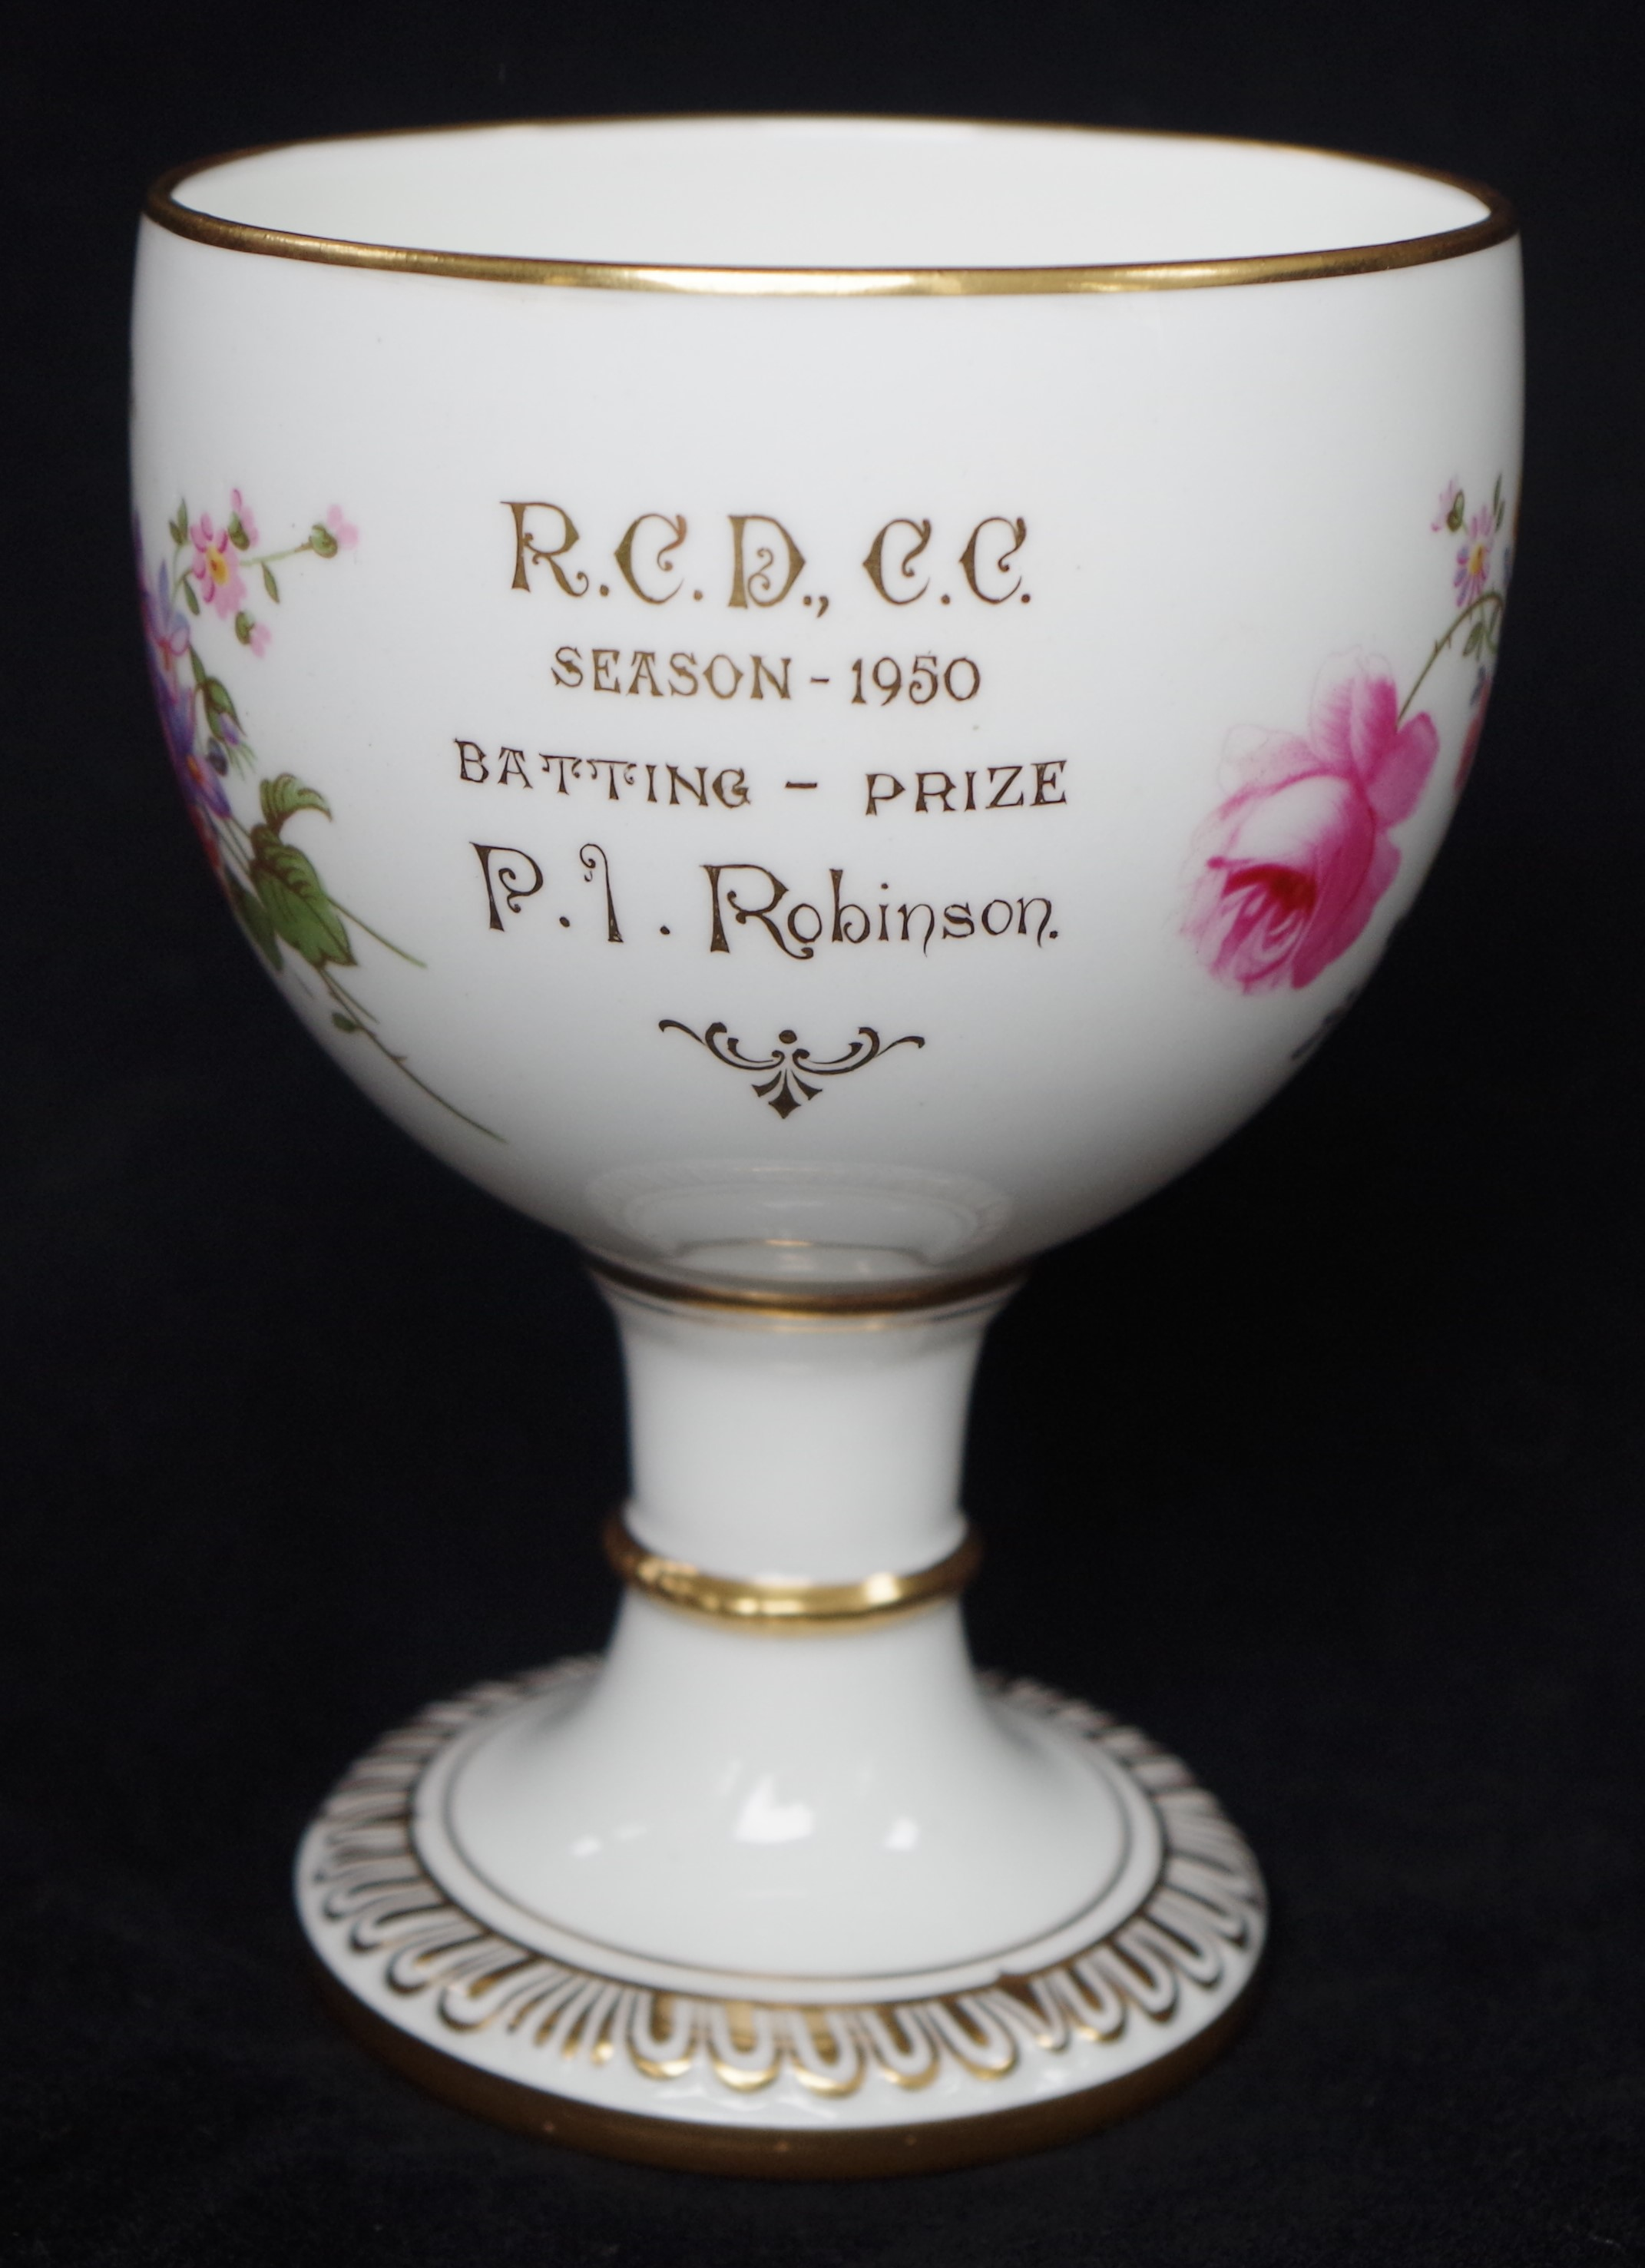 royal-crown-derby-phillip-robinson-posie-goblet-batting-prize-1950